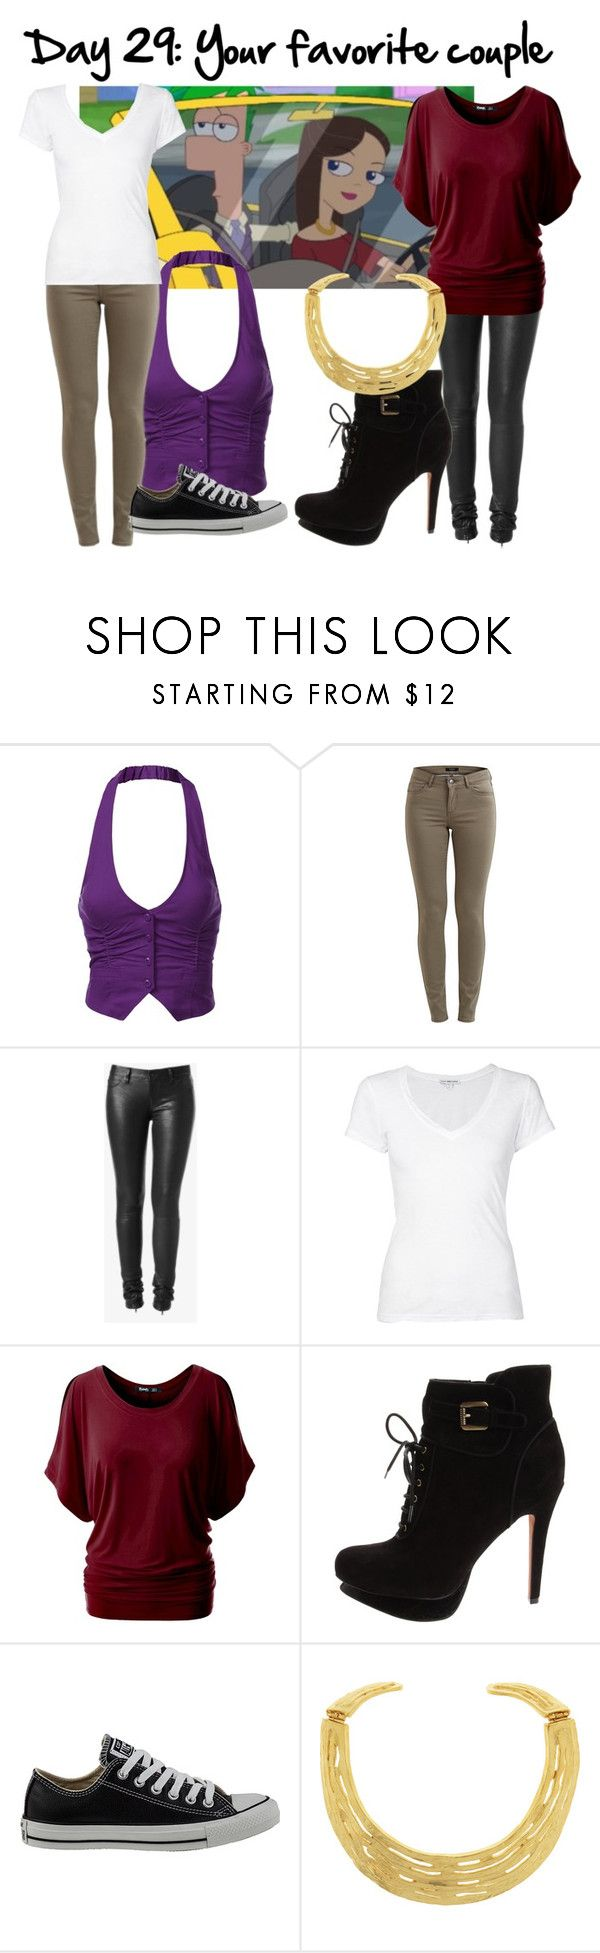 """""""Day 29: Ferb and Vanessa - 30 Day DisneyBound Challenge"""" by dutchveertje ❤ liked on Polyvore featuring J.TOMSON, VILA, Hudson Jeans, James Perse, Sam Edelman, Converse and Kenneth Jay Lane"""